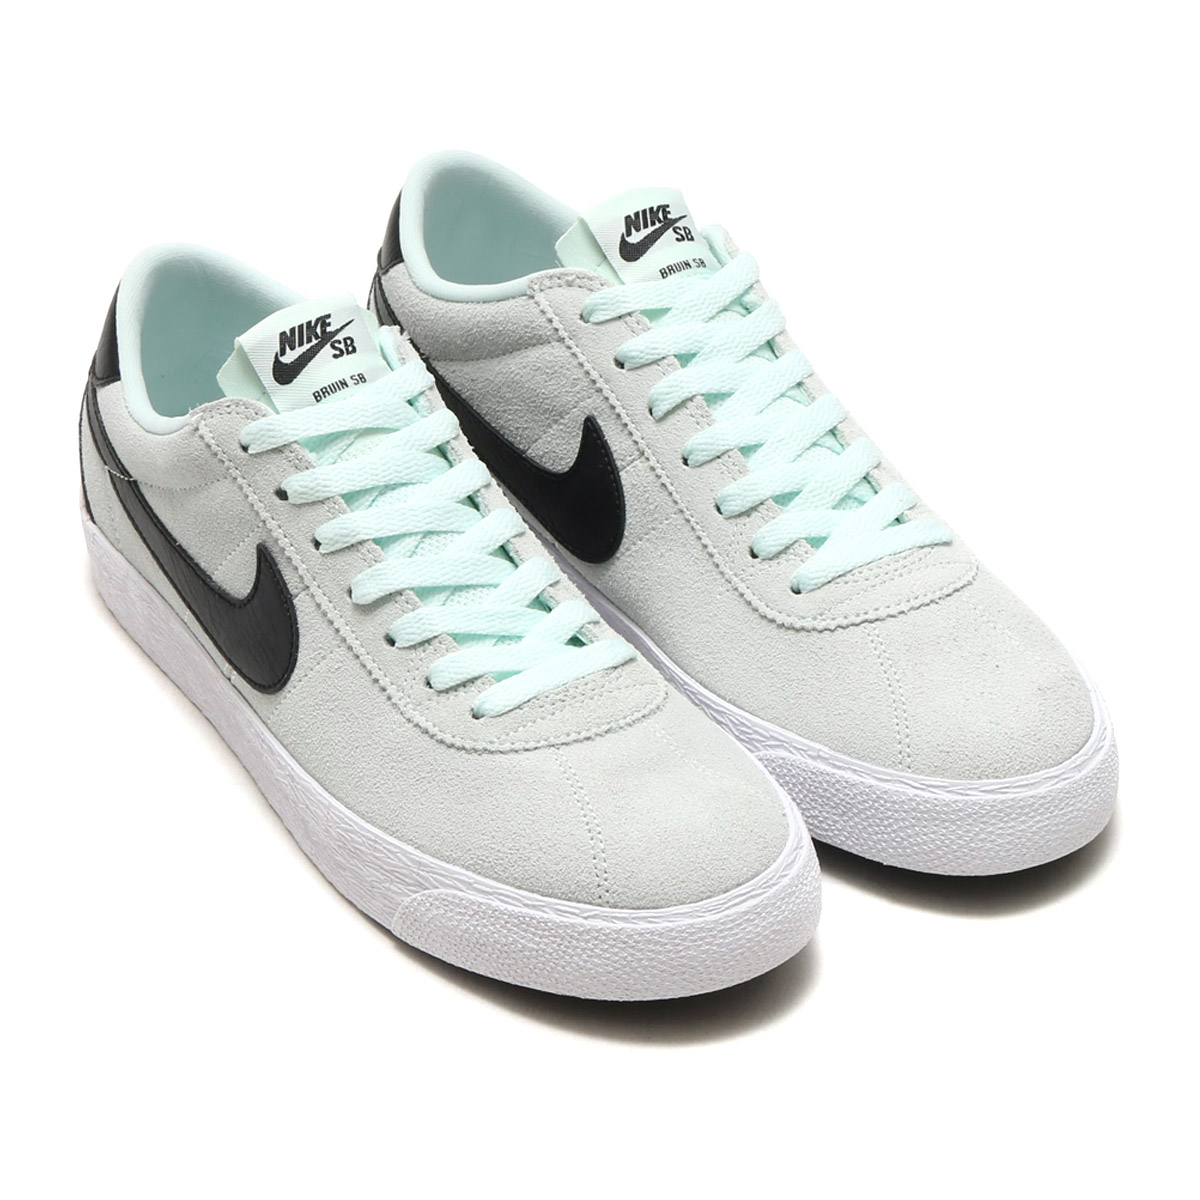 dc28245d6a8d Nike SB bulldog in zoom premium SE carries mid sole of the honeycomb  structure and thin クッショニング and shows a flexible grip and superior shock  power of ...